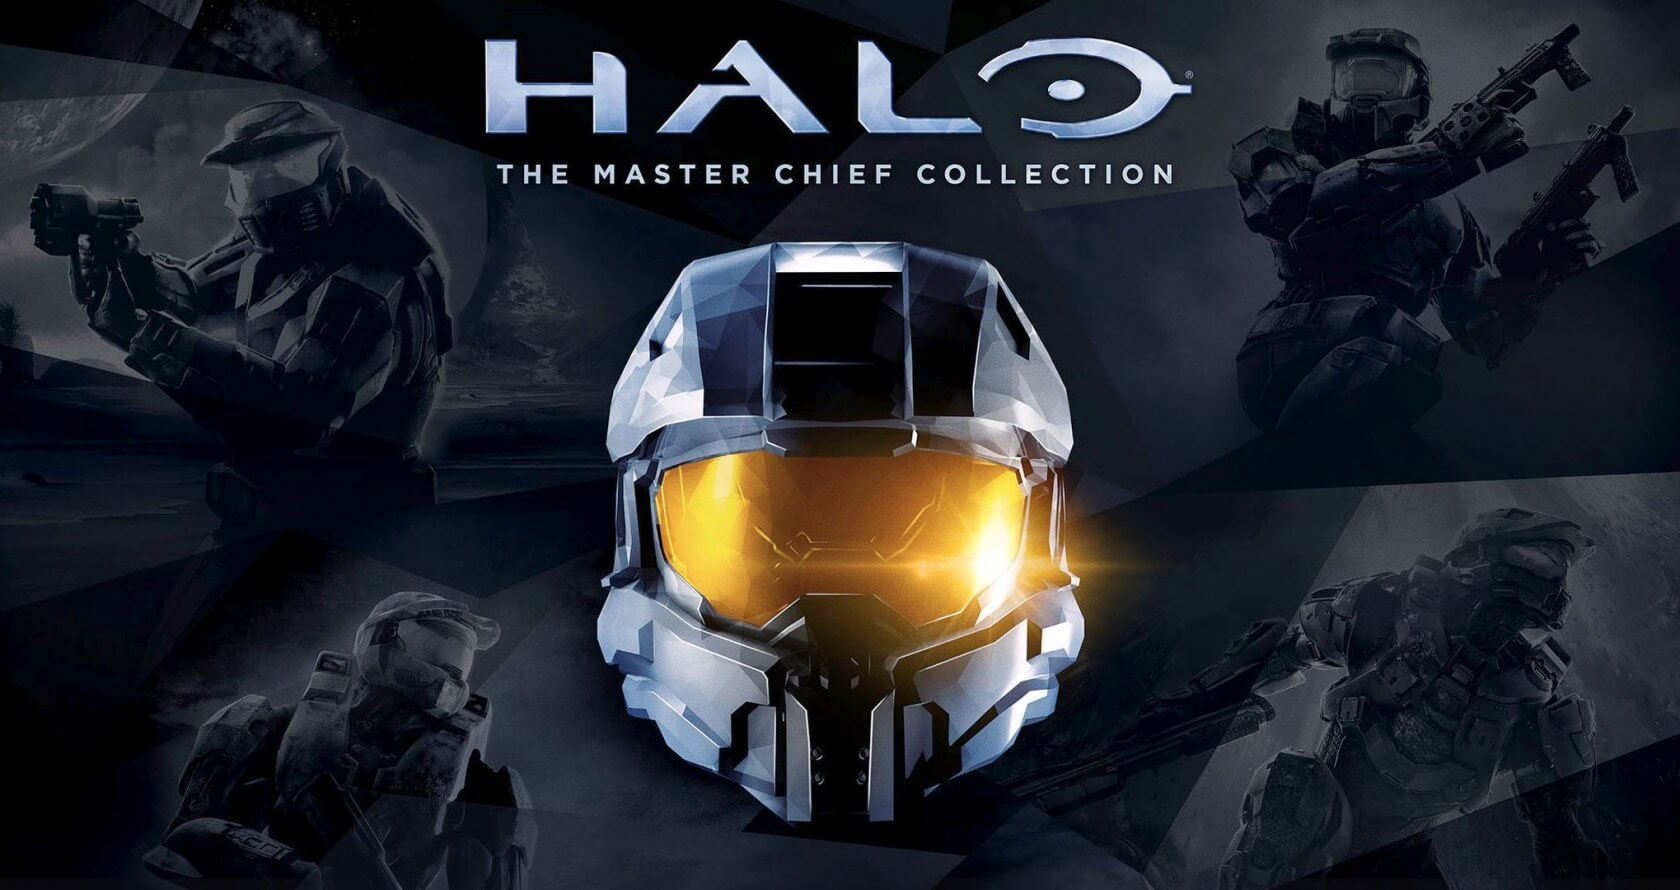 Halo: The Master Chief Collection's PC port could launch this year